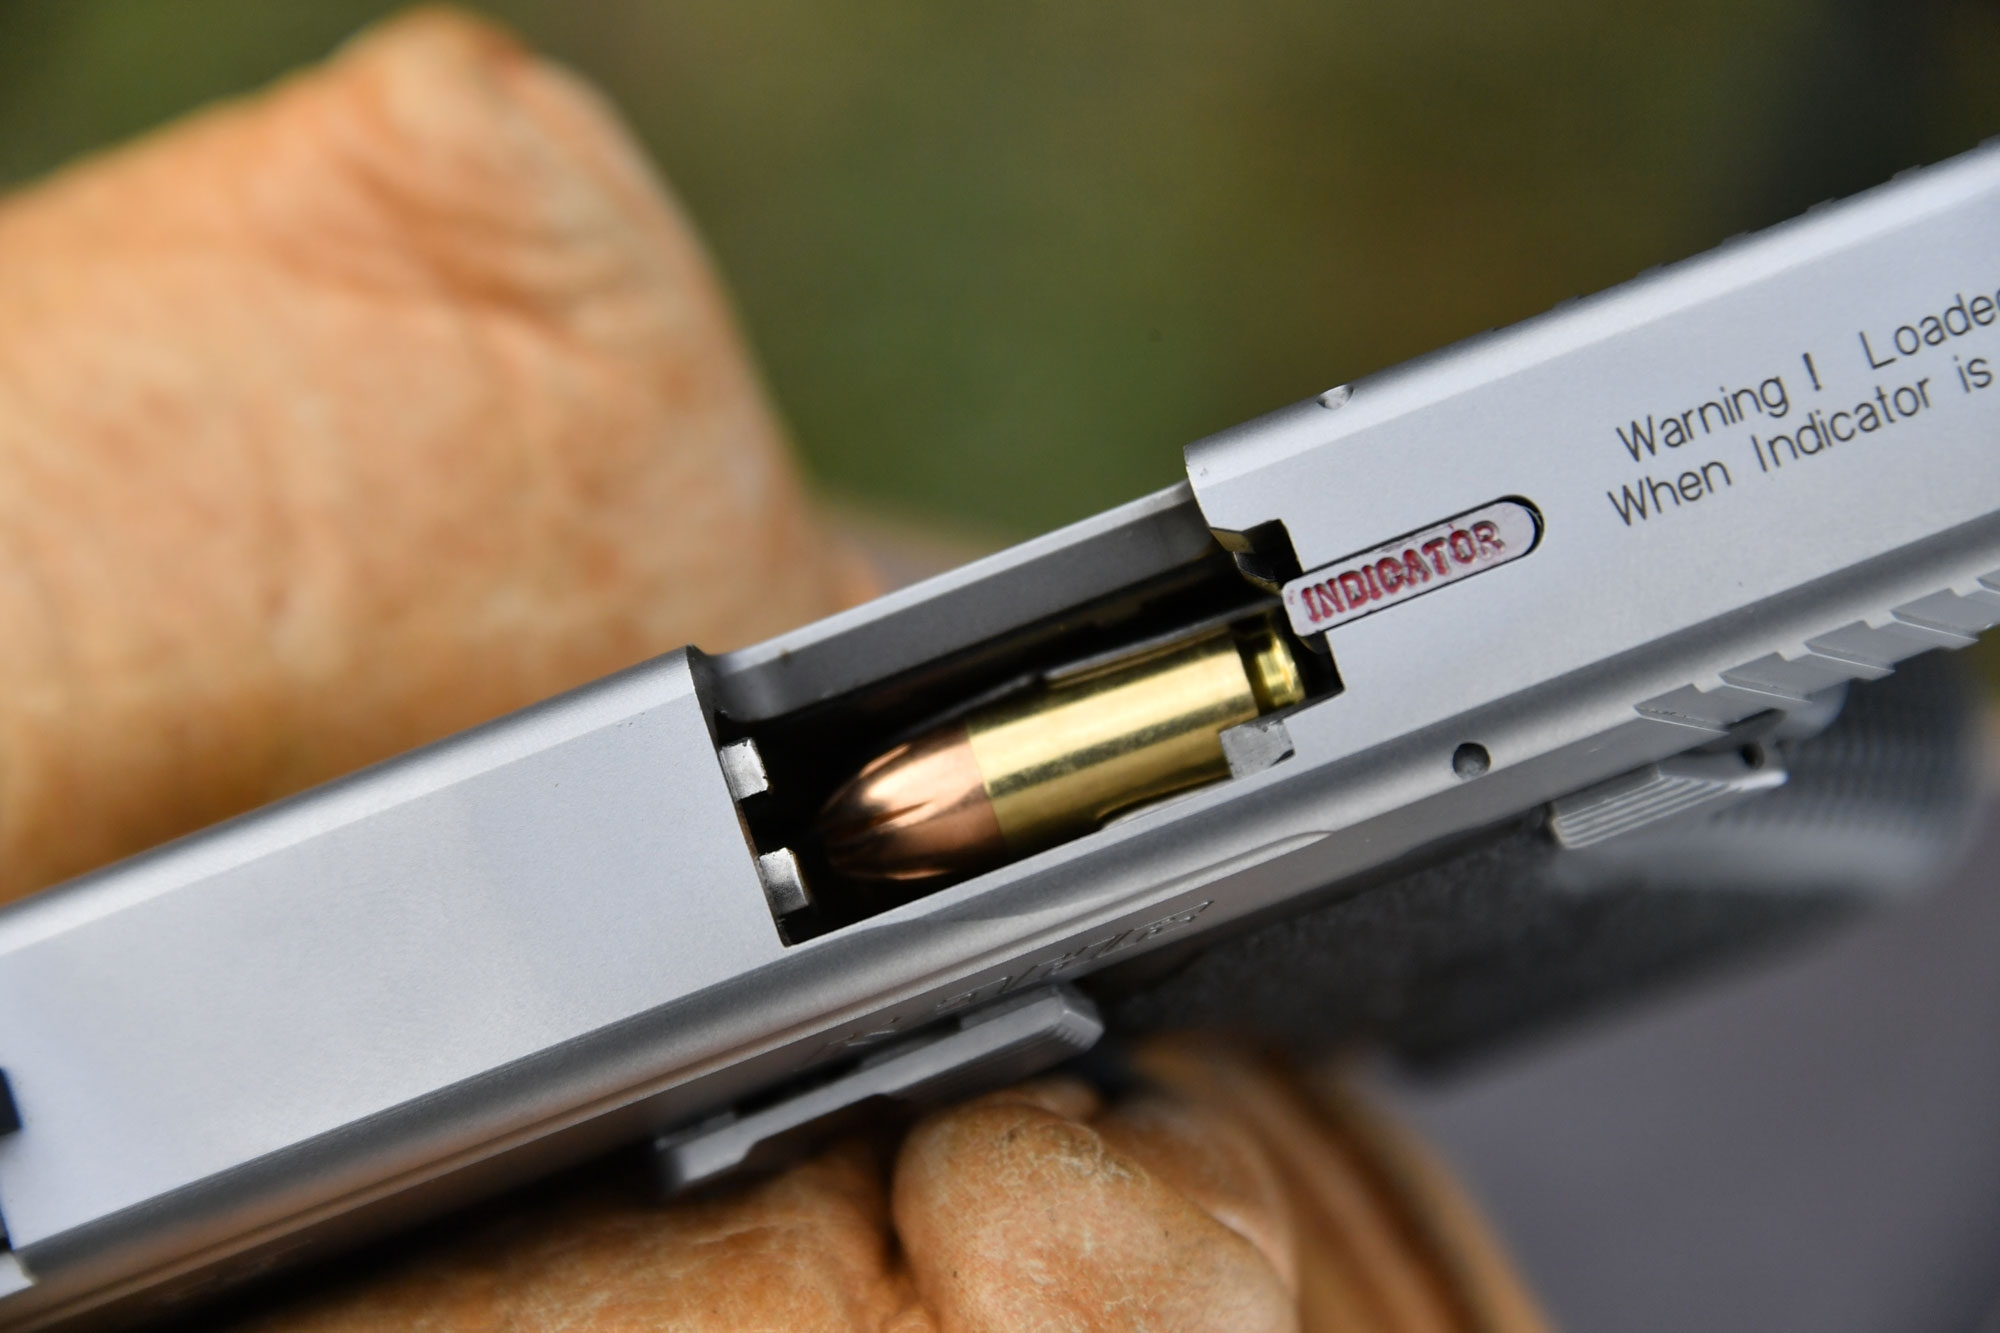 9 mm cartridge in the chamber of the Kahr P9 compact pistol